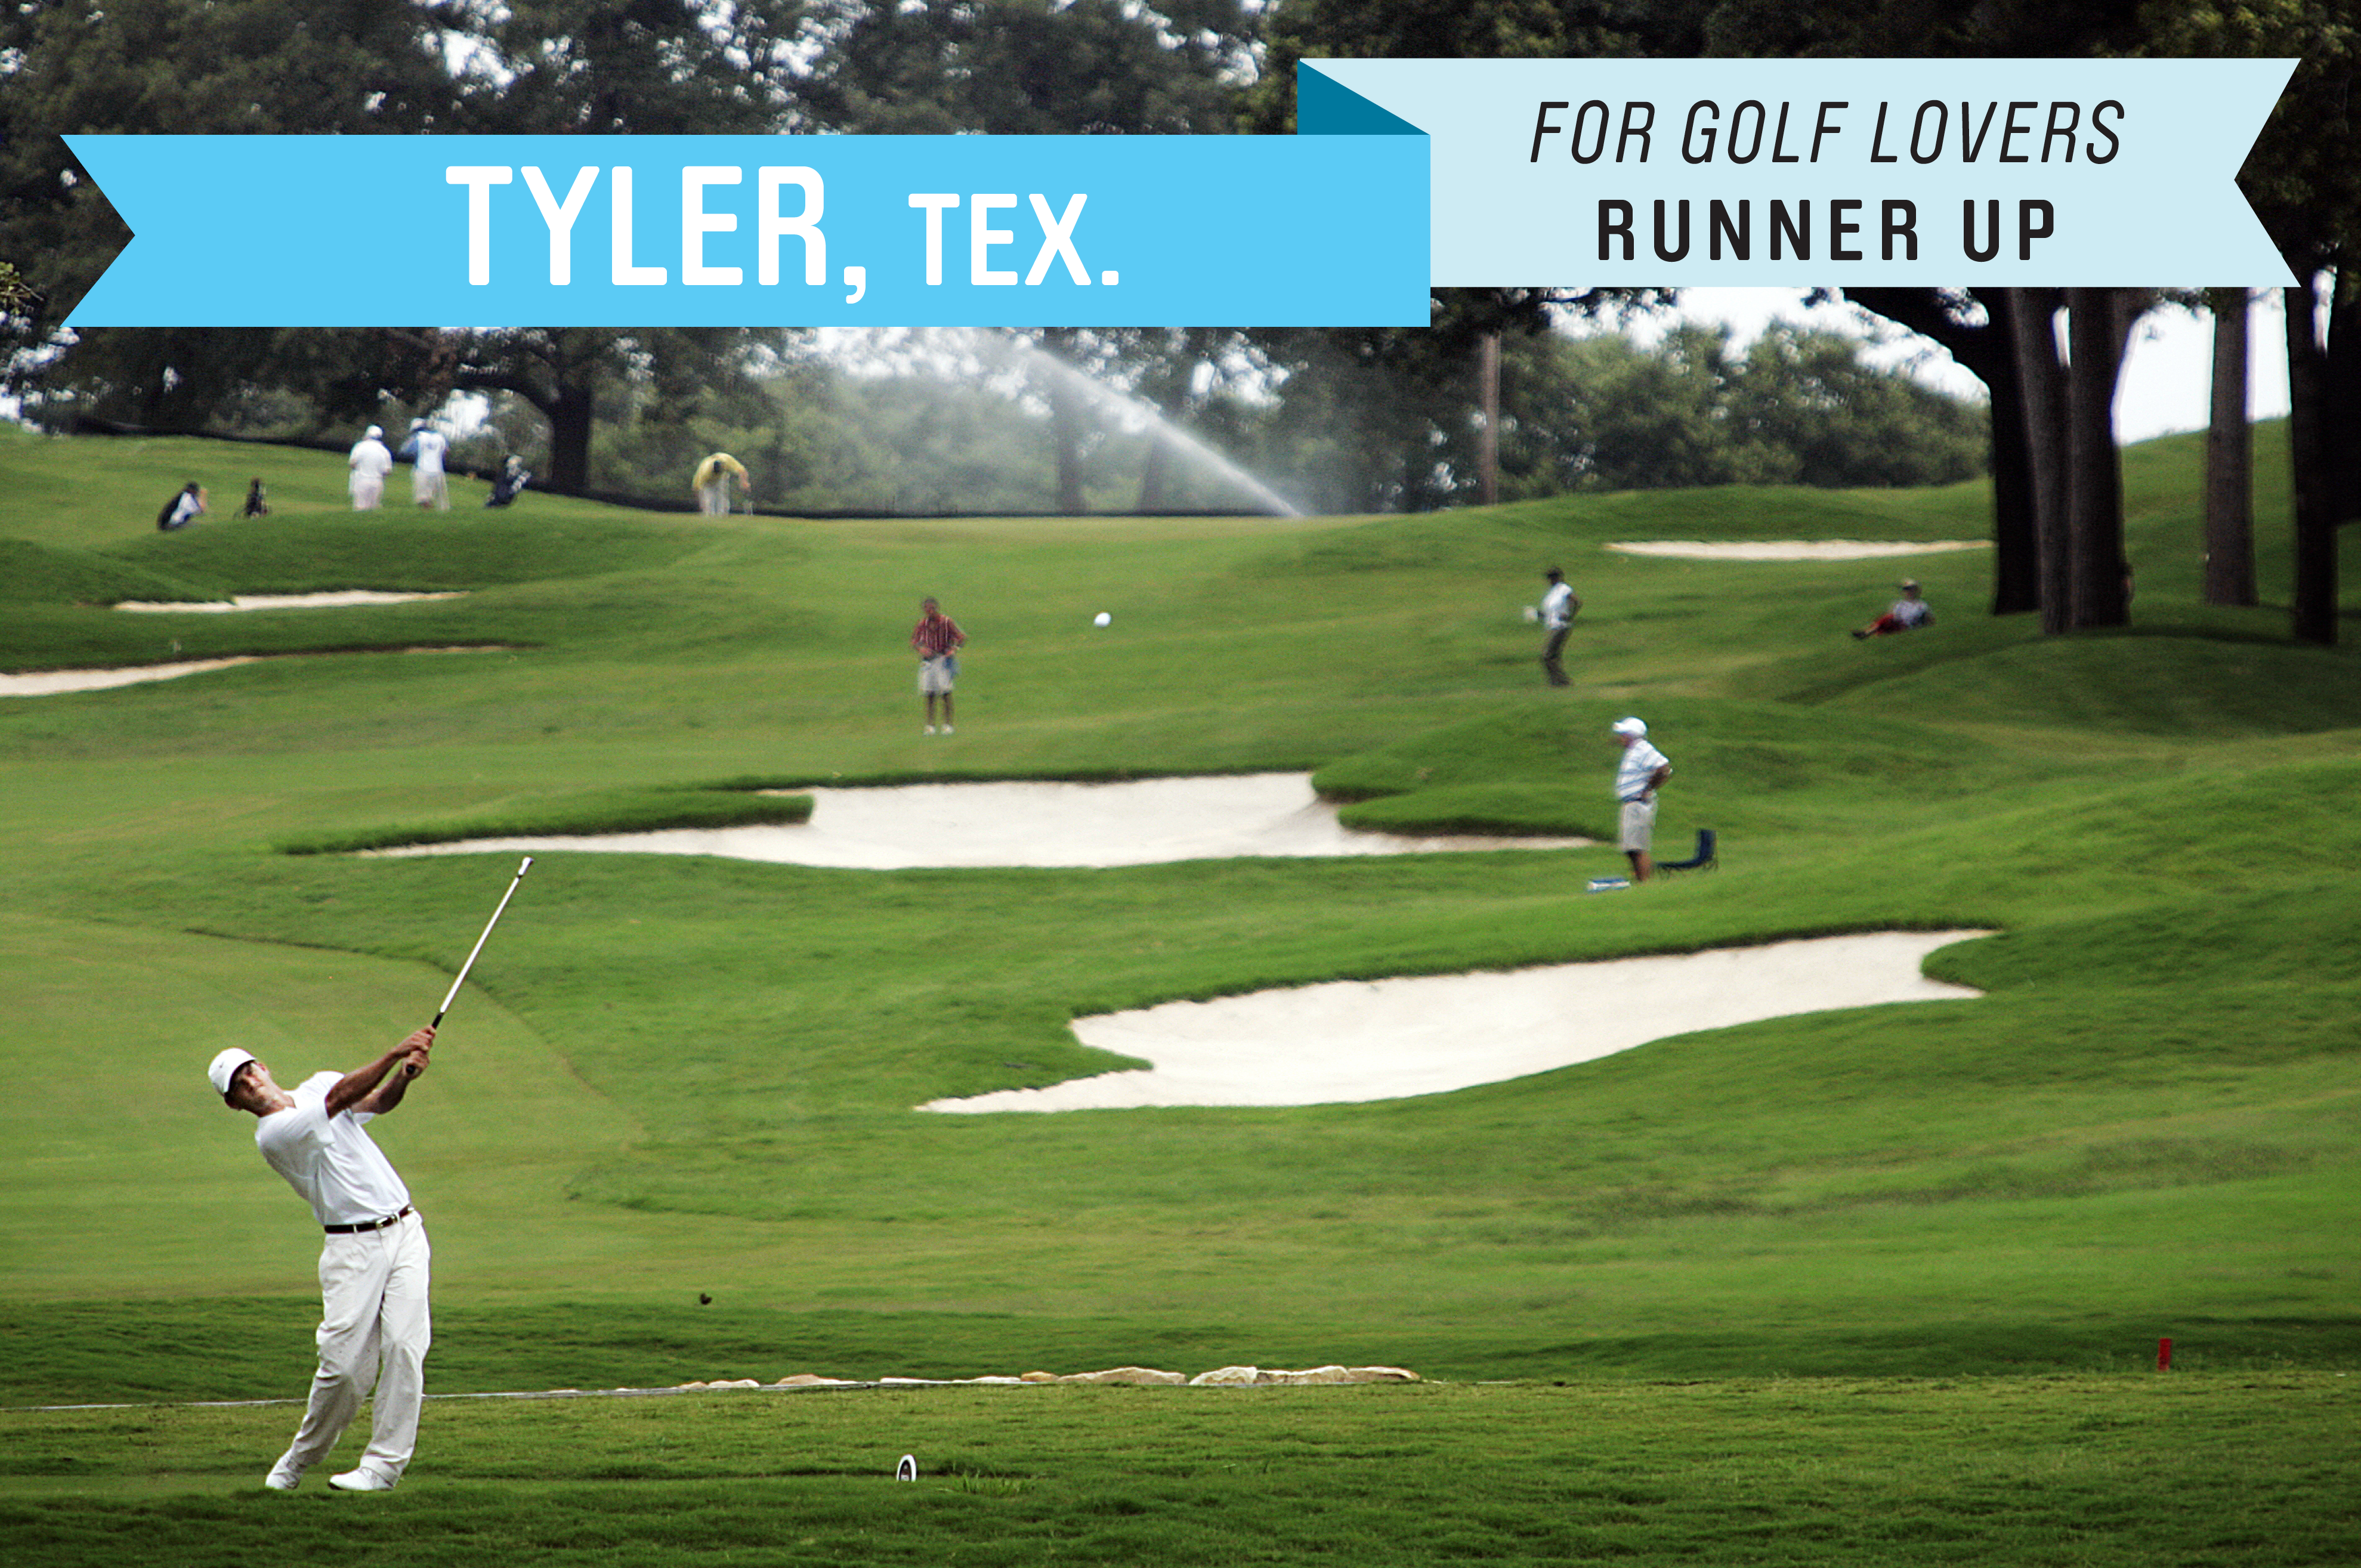 This East Texas town is certified by the state as a retirement community (because it meets key criteria attractive to retirees). Tyler has a low cost of living (98 compared to 100 for the national median) , no state income tax and well-regarded public courses such as Pine Springs Golf Club, which was renovated in 2010.